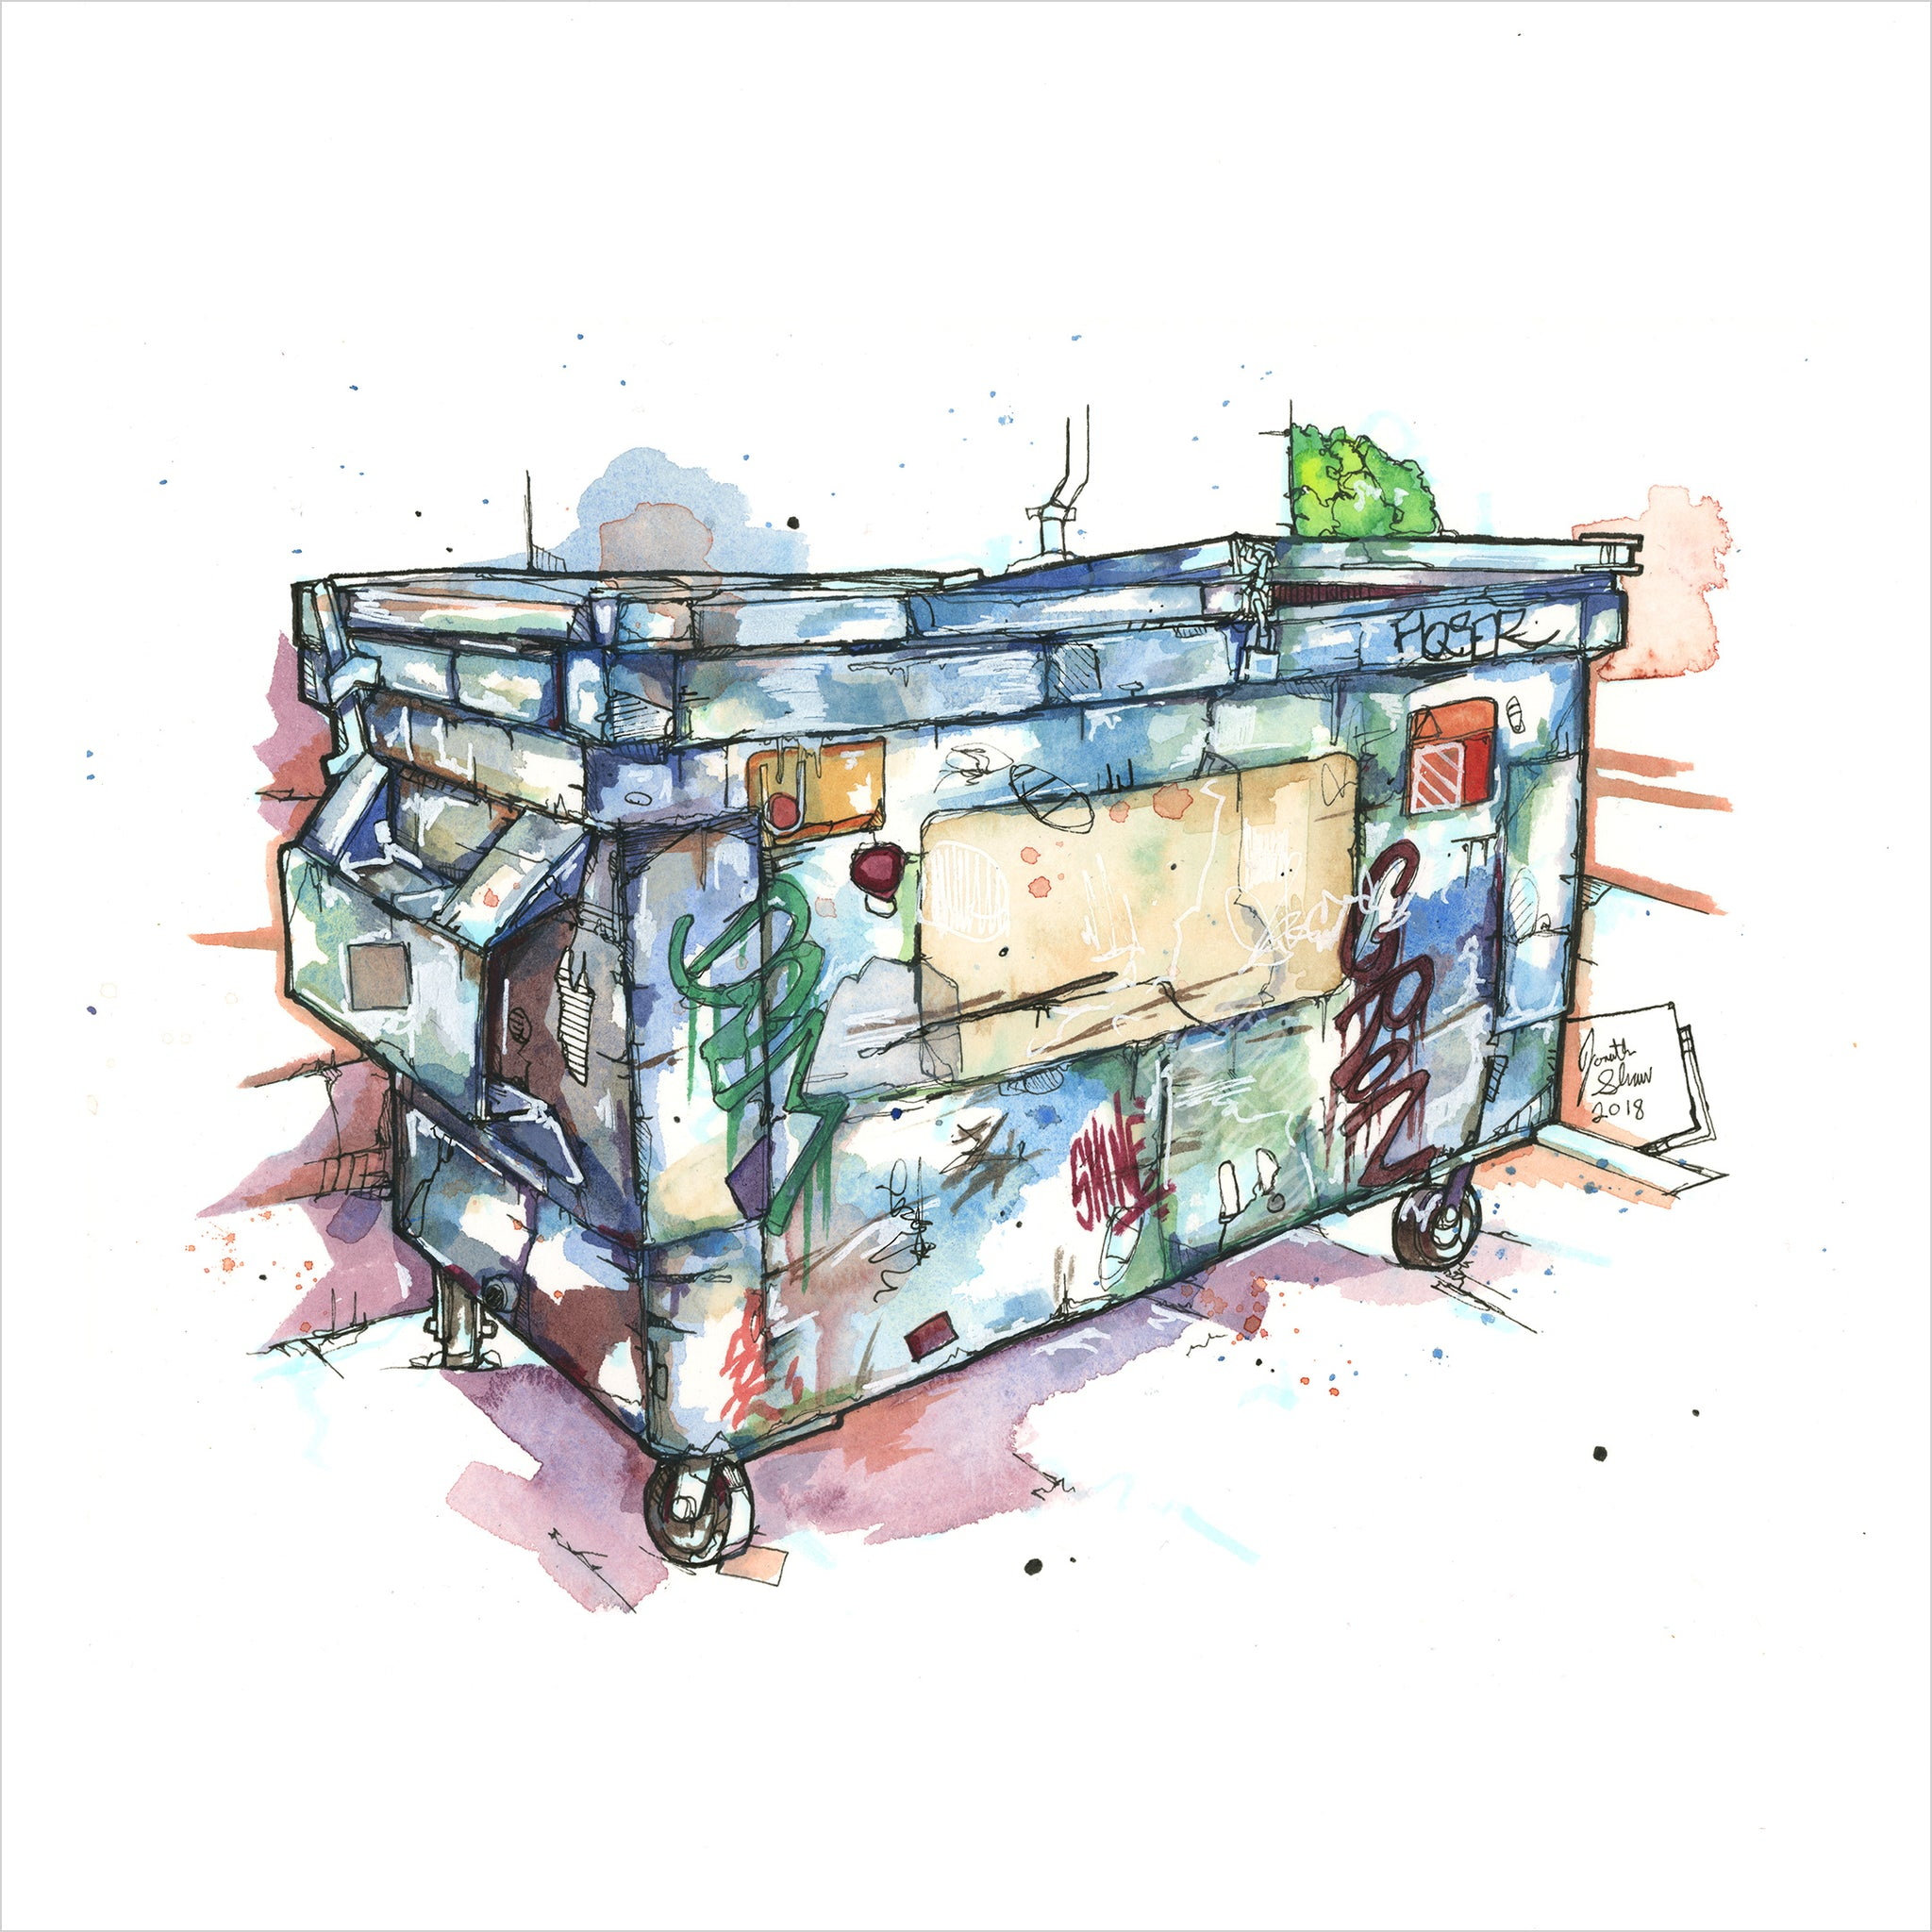 """Blue Dumpster"" - Original 8x10 Illustration (SOLD)"